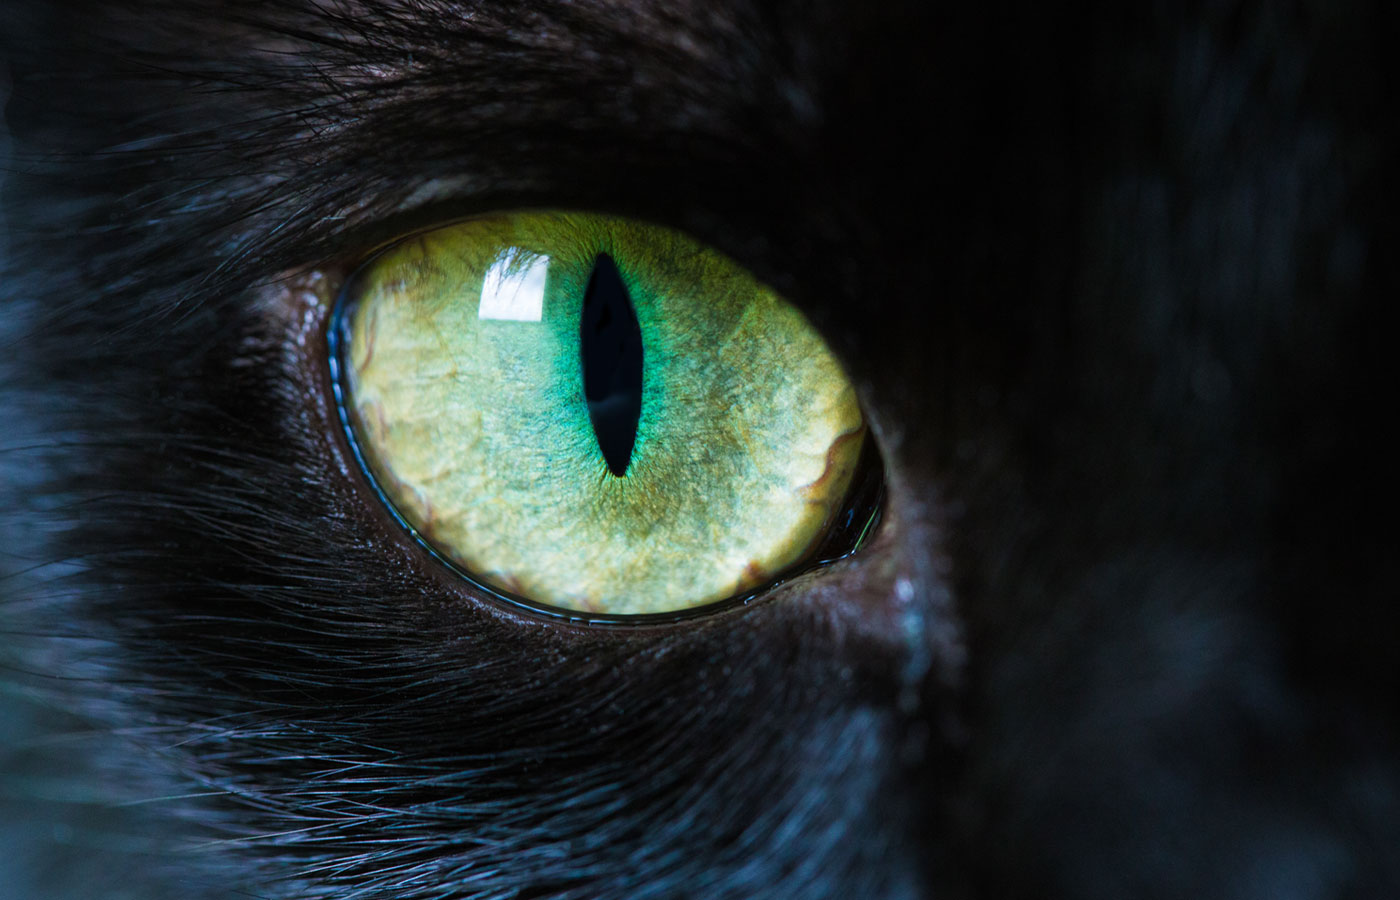 A macro close up of a piercing bright green cat eye of a jet black cat